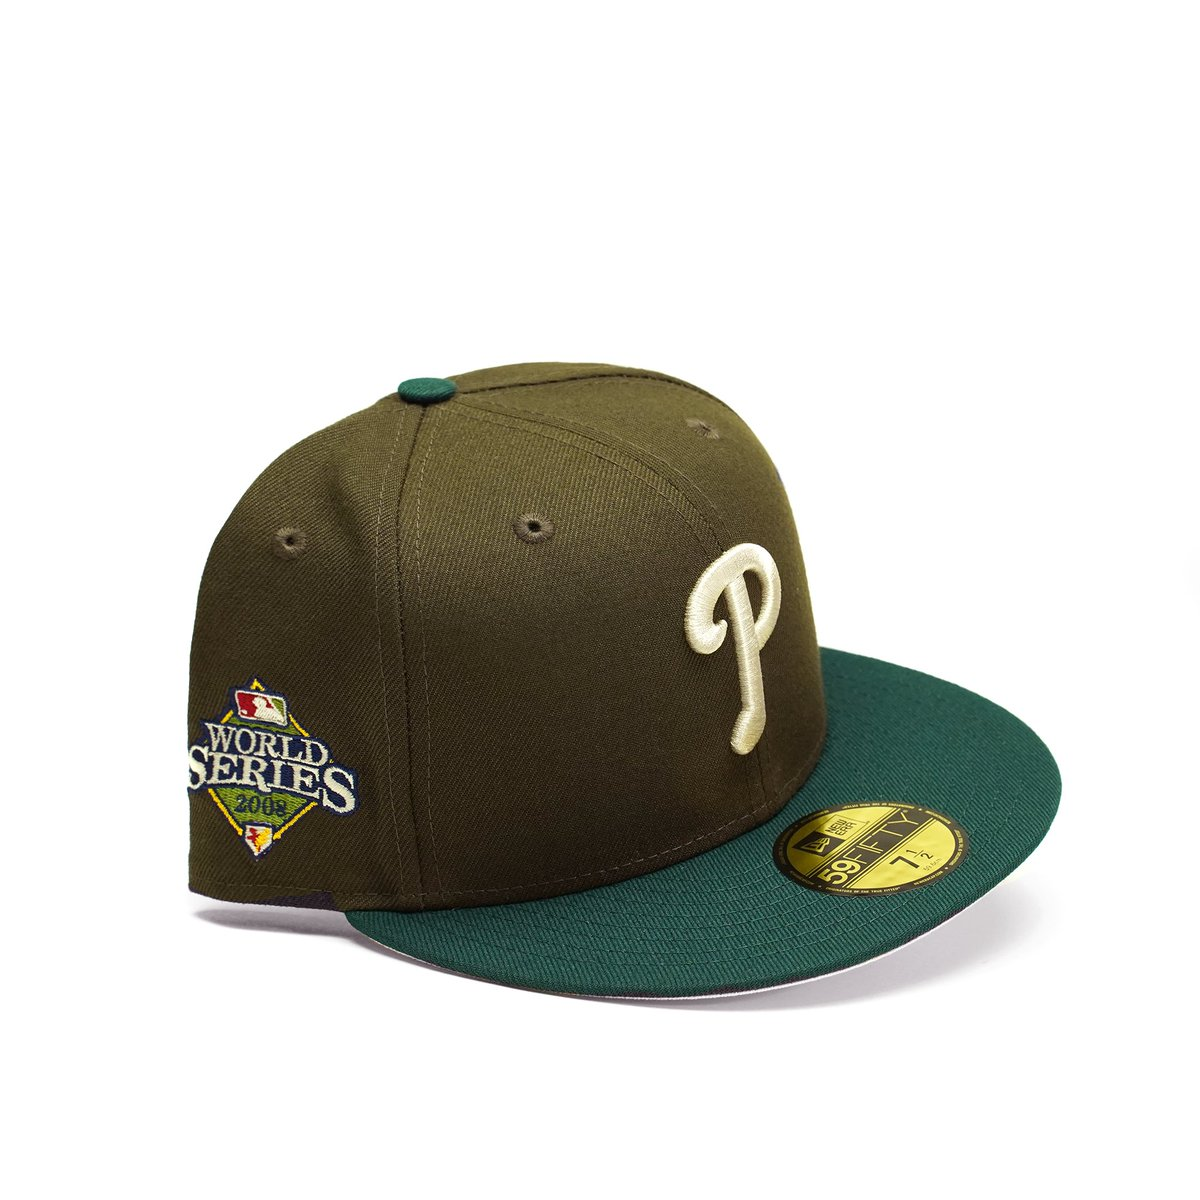 🔥PHILLIES WORLD SERIES 2008 🔥 SHOP 👉https://t.co/TJIKCDuGbx #newera #neweracap #mlb #59fifty #fittedcap #cotd #capoftheday #capcollector #capaddict #hatcollector #sidepatch #phillies #fitted #headwear #fittedfamily #hatcollection #teamfitted #fittedhat #fittedcap https://t.co/o5z7nc2NBj